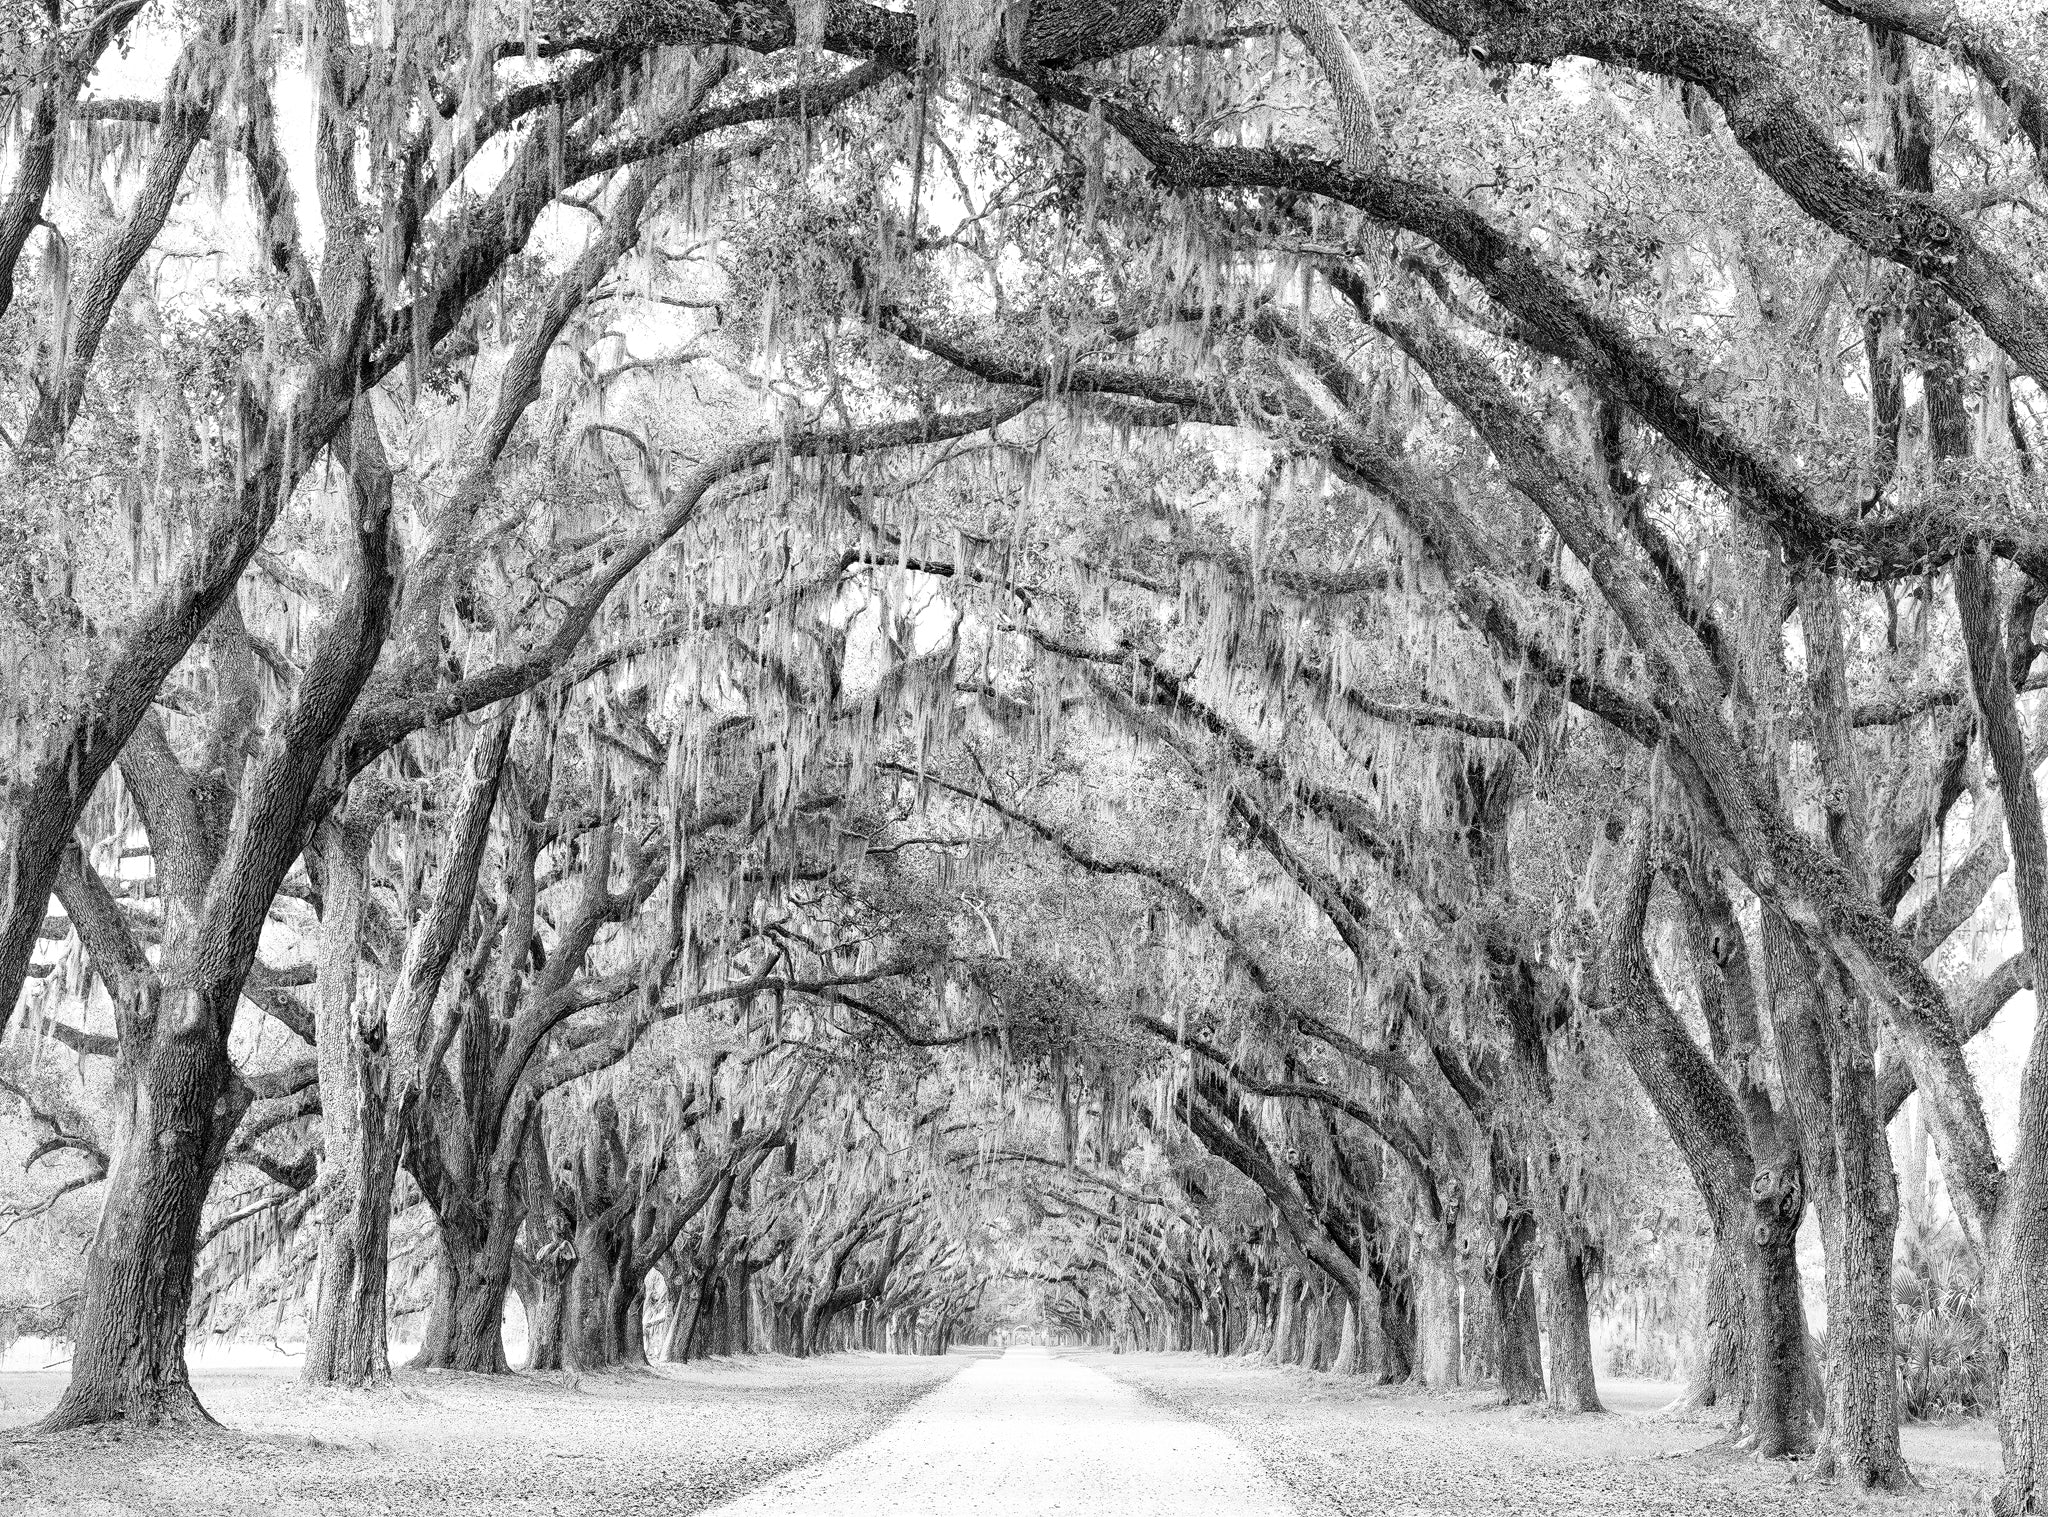 This is the composited landscape photograph of the oak alley road Keith made from approximately 9 sections